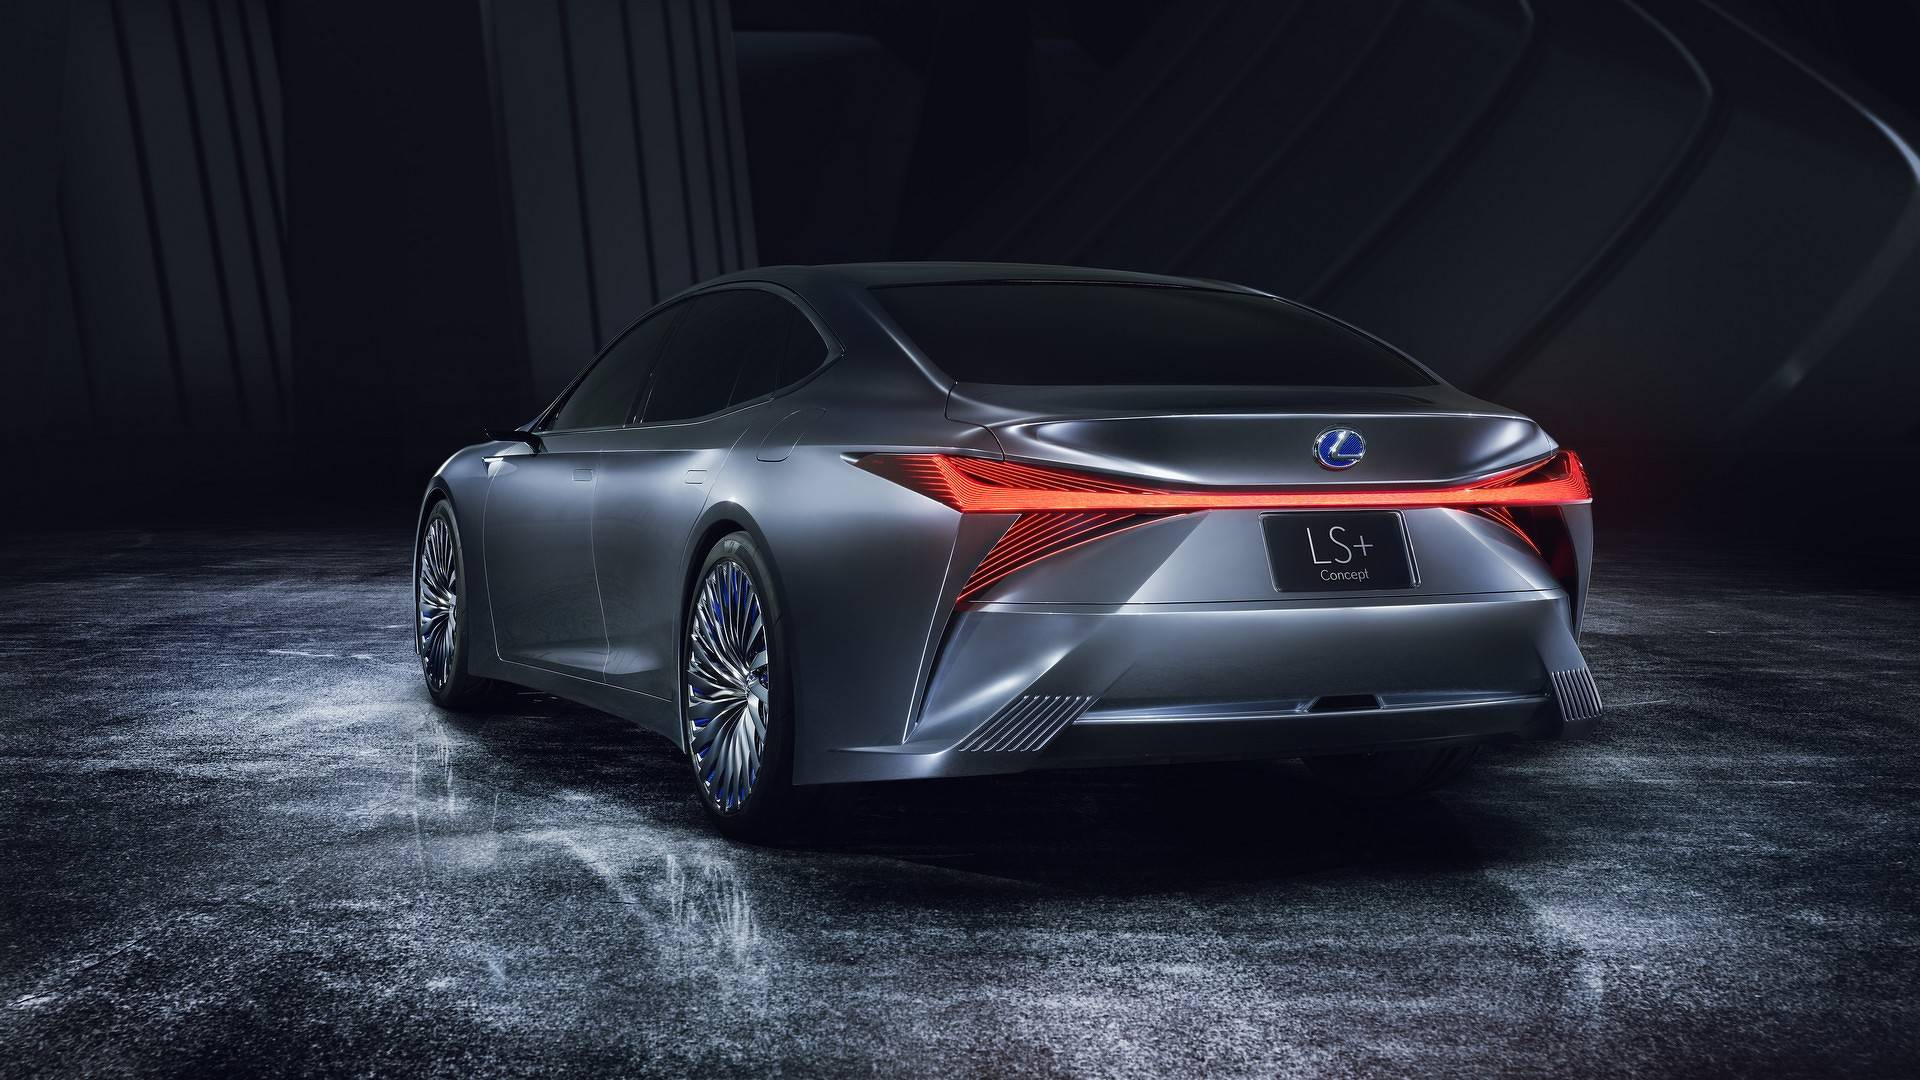 https://s1.cdn.autoevolution.com/images/news/gallery/lexus-f-brand-now-takes-electrification-seriously_3.jpg